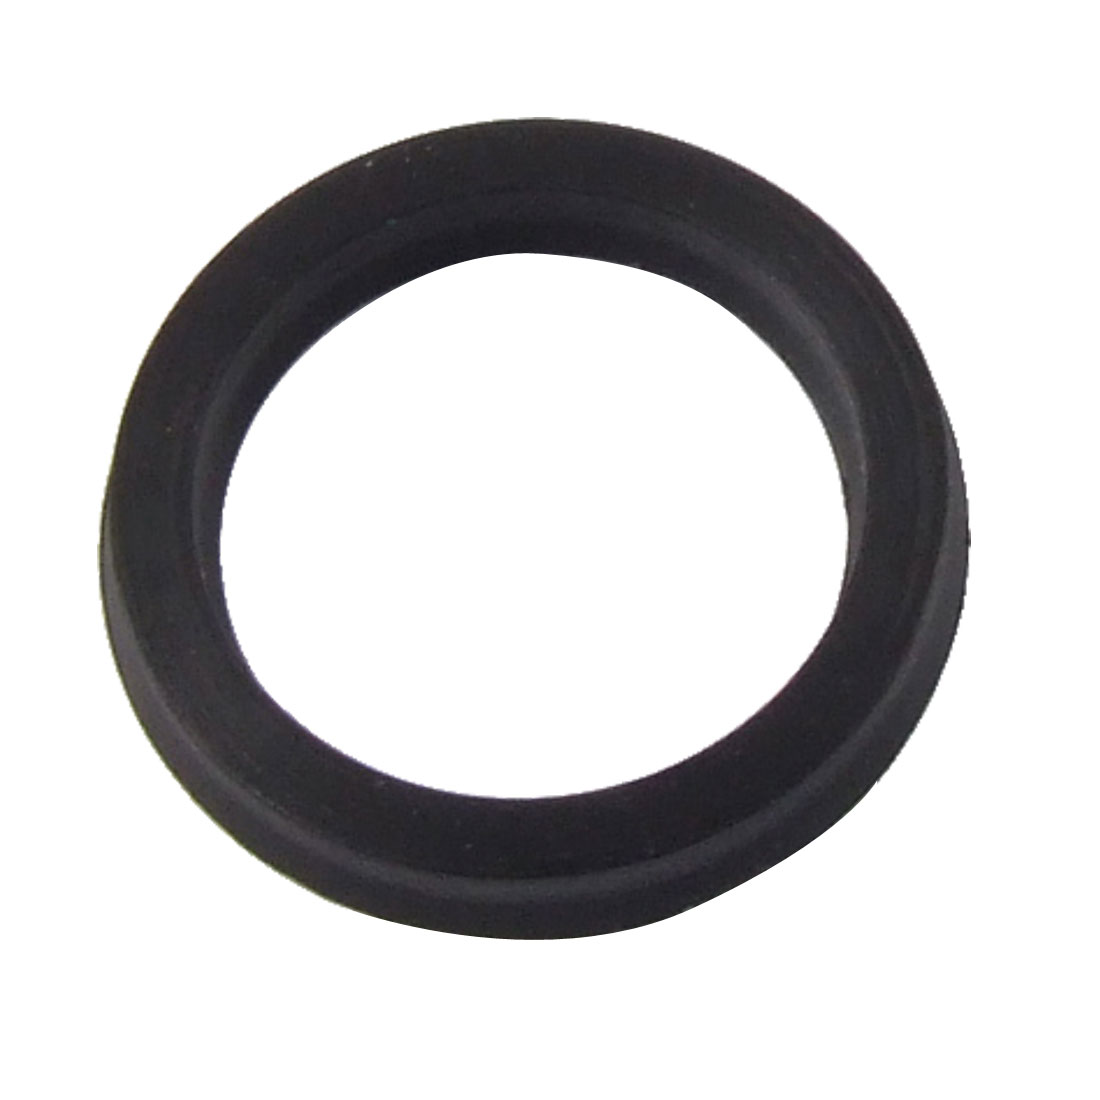 14mm x 18mm x 2.8mm MYA Type Single Lip Pneumatic Seal Sealing Ring